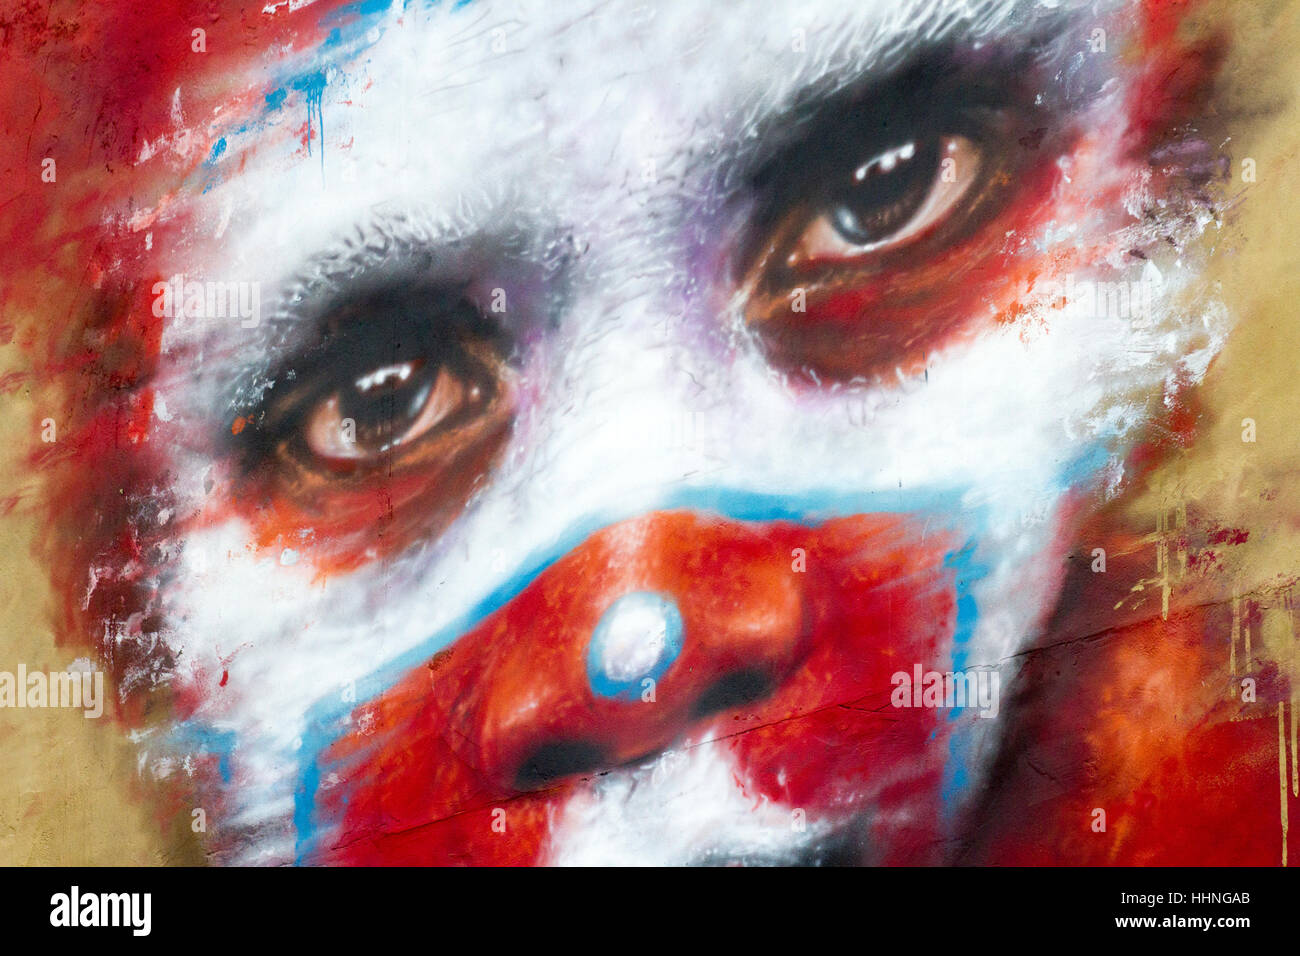 African style painted voodoo red-faced scary clown graffiti, Manchester, UK - Stock Image